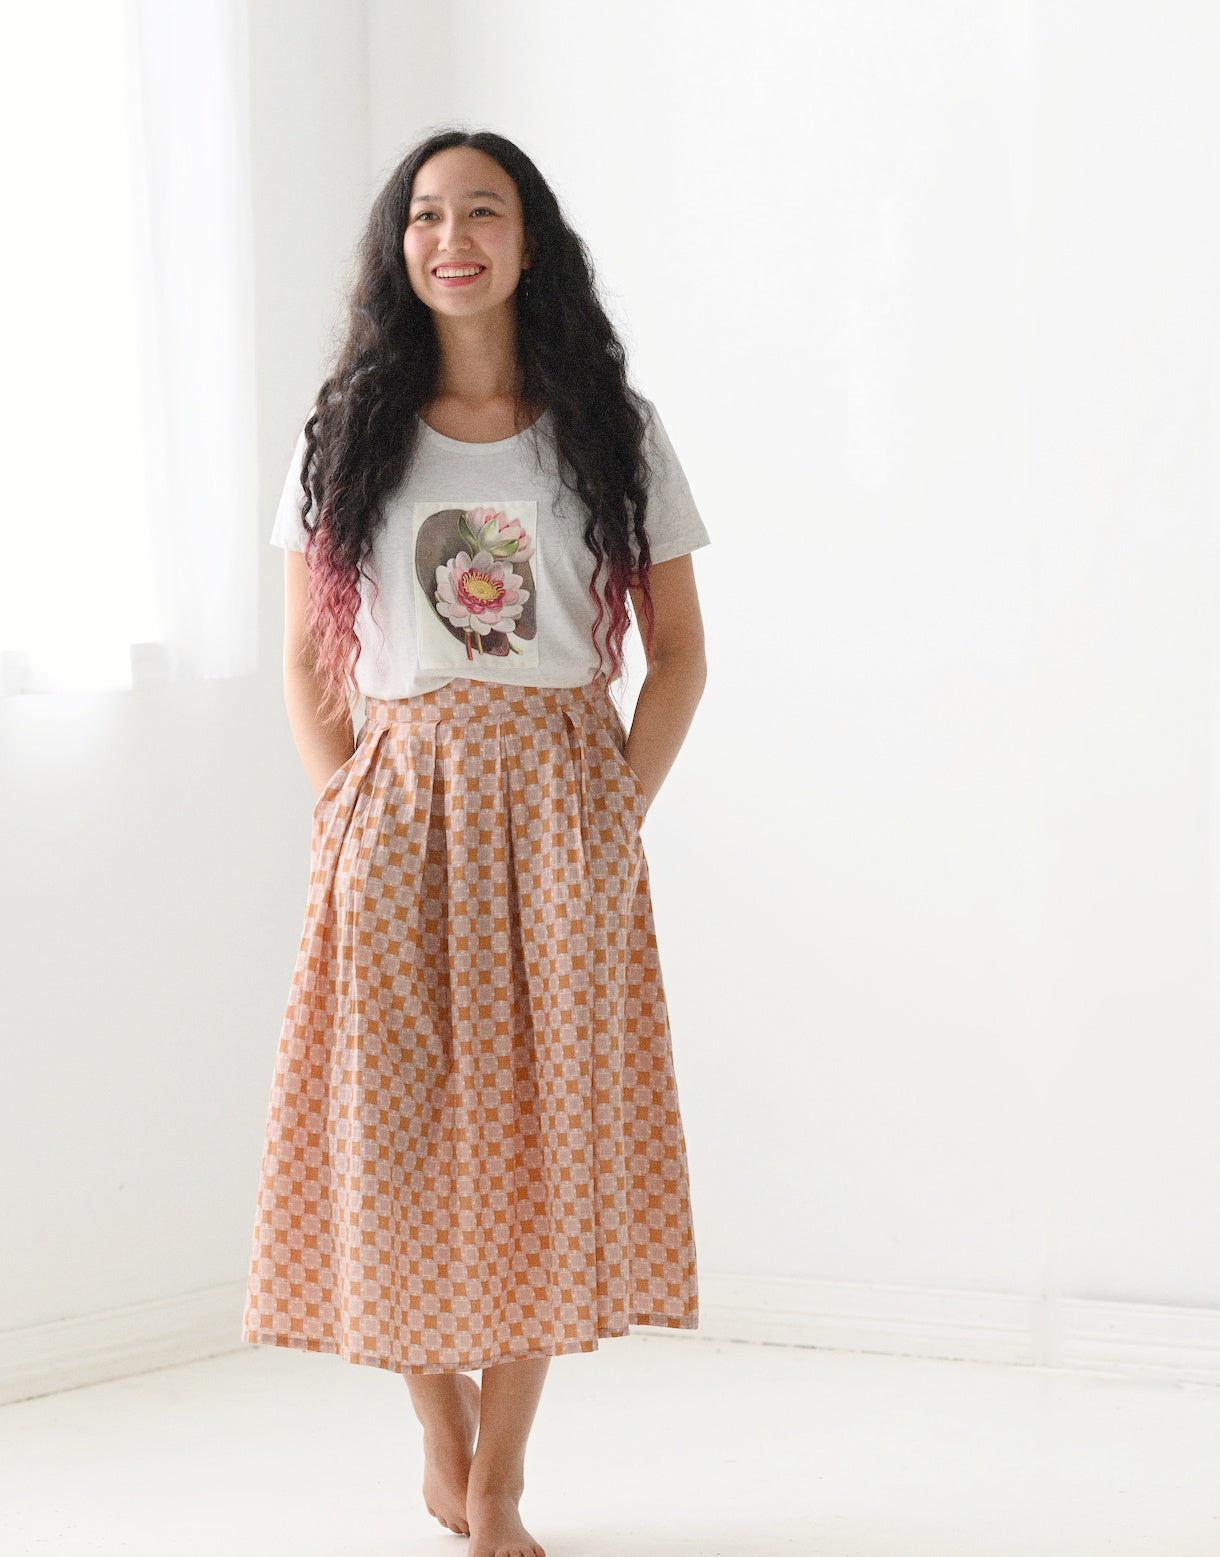 Jenna skirt in Square Dancer *organic cotton